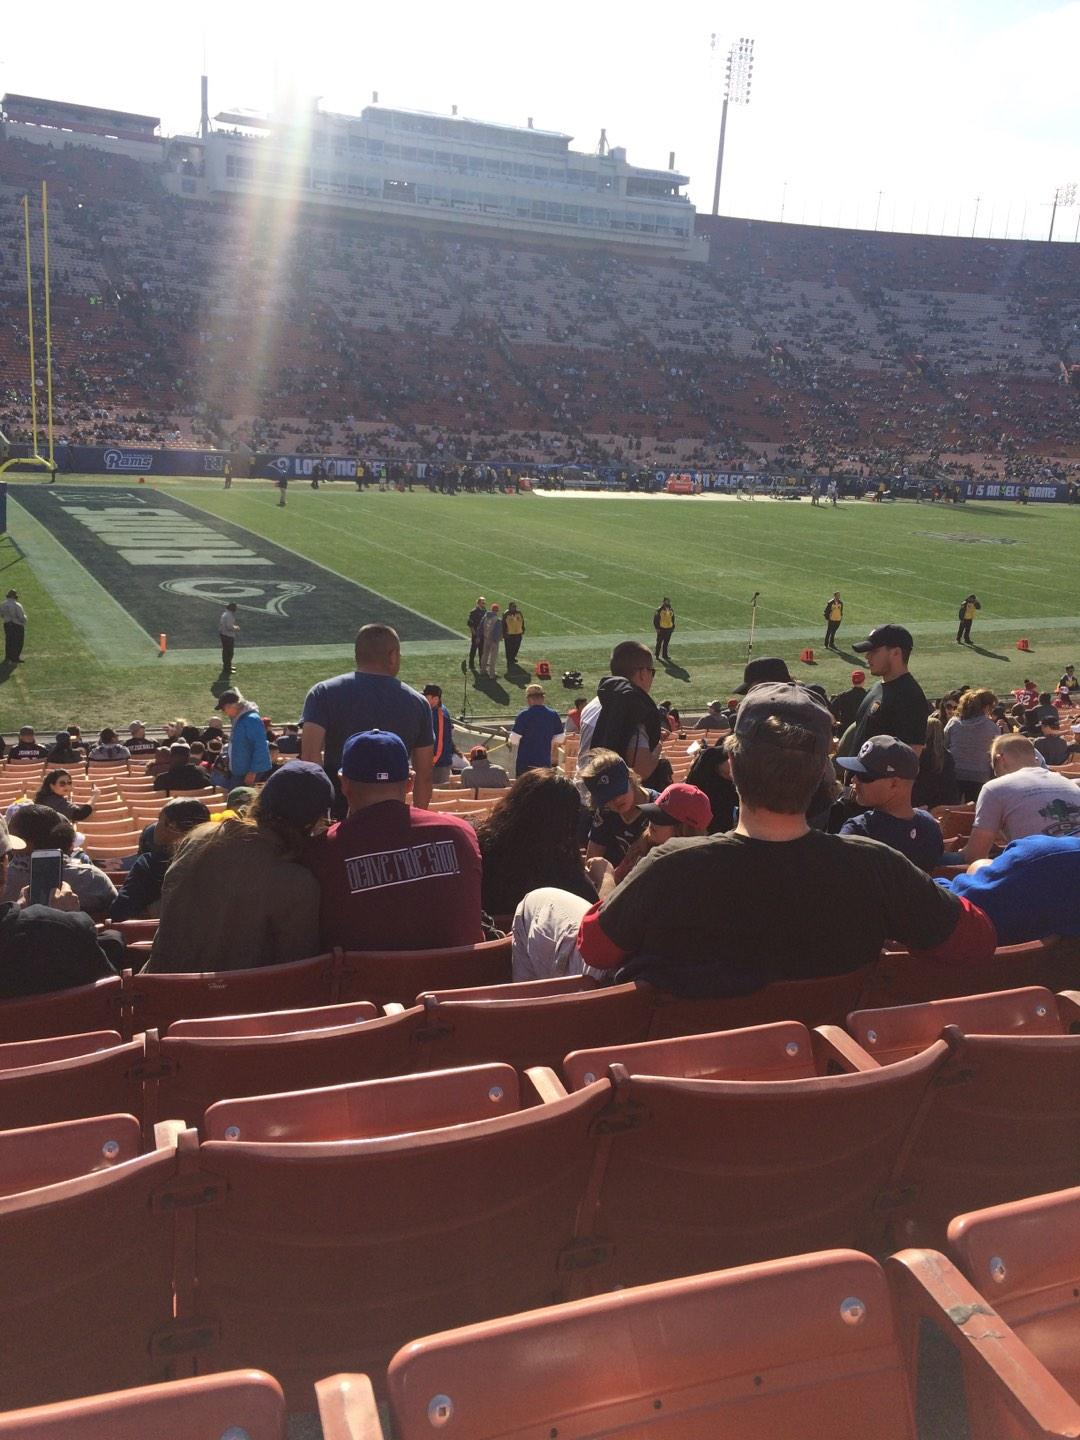 Los Angeles Memorial Coliseum Section 125A Row 25 Seat 11